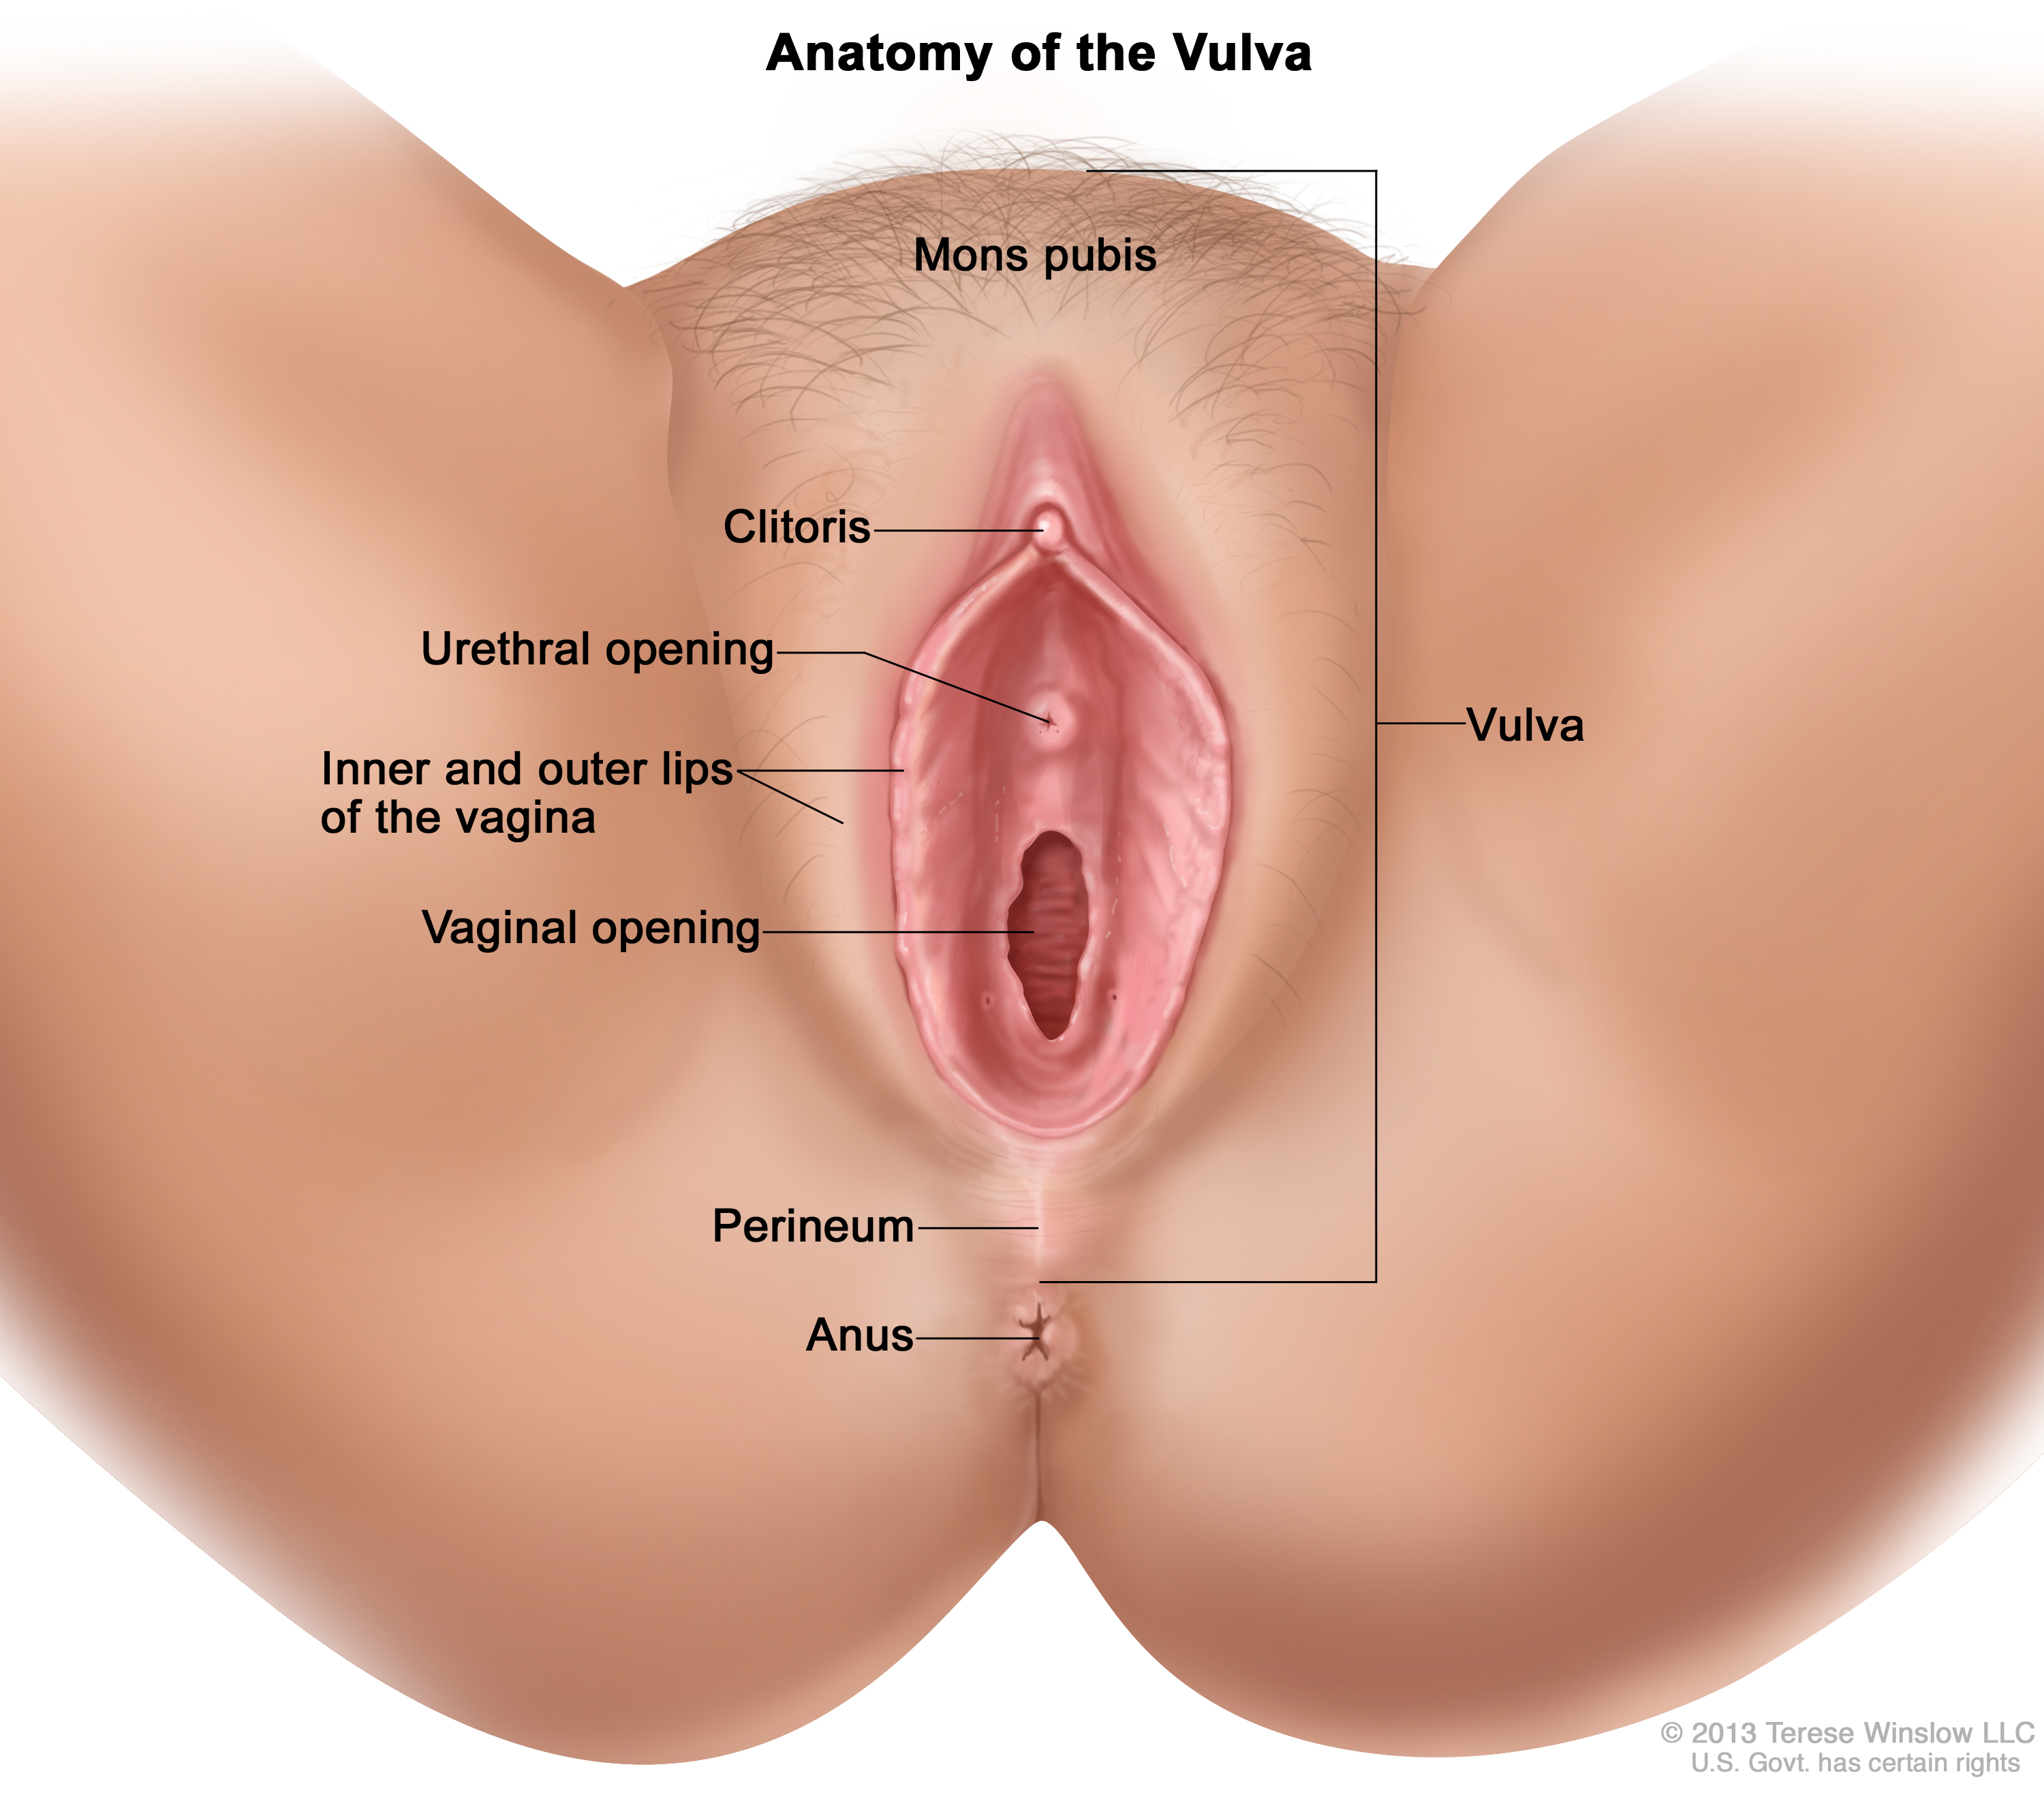 ... vagina, and the vaginal opening. Also shown are the perineum and anus